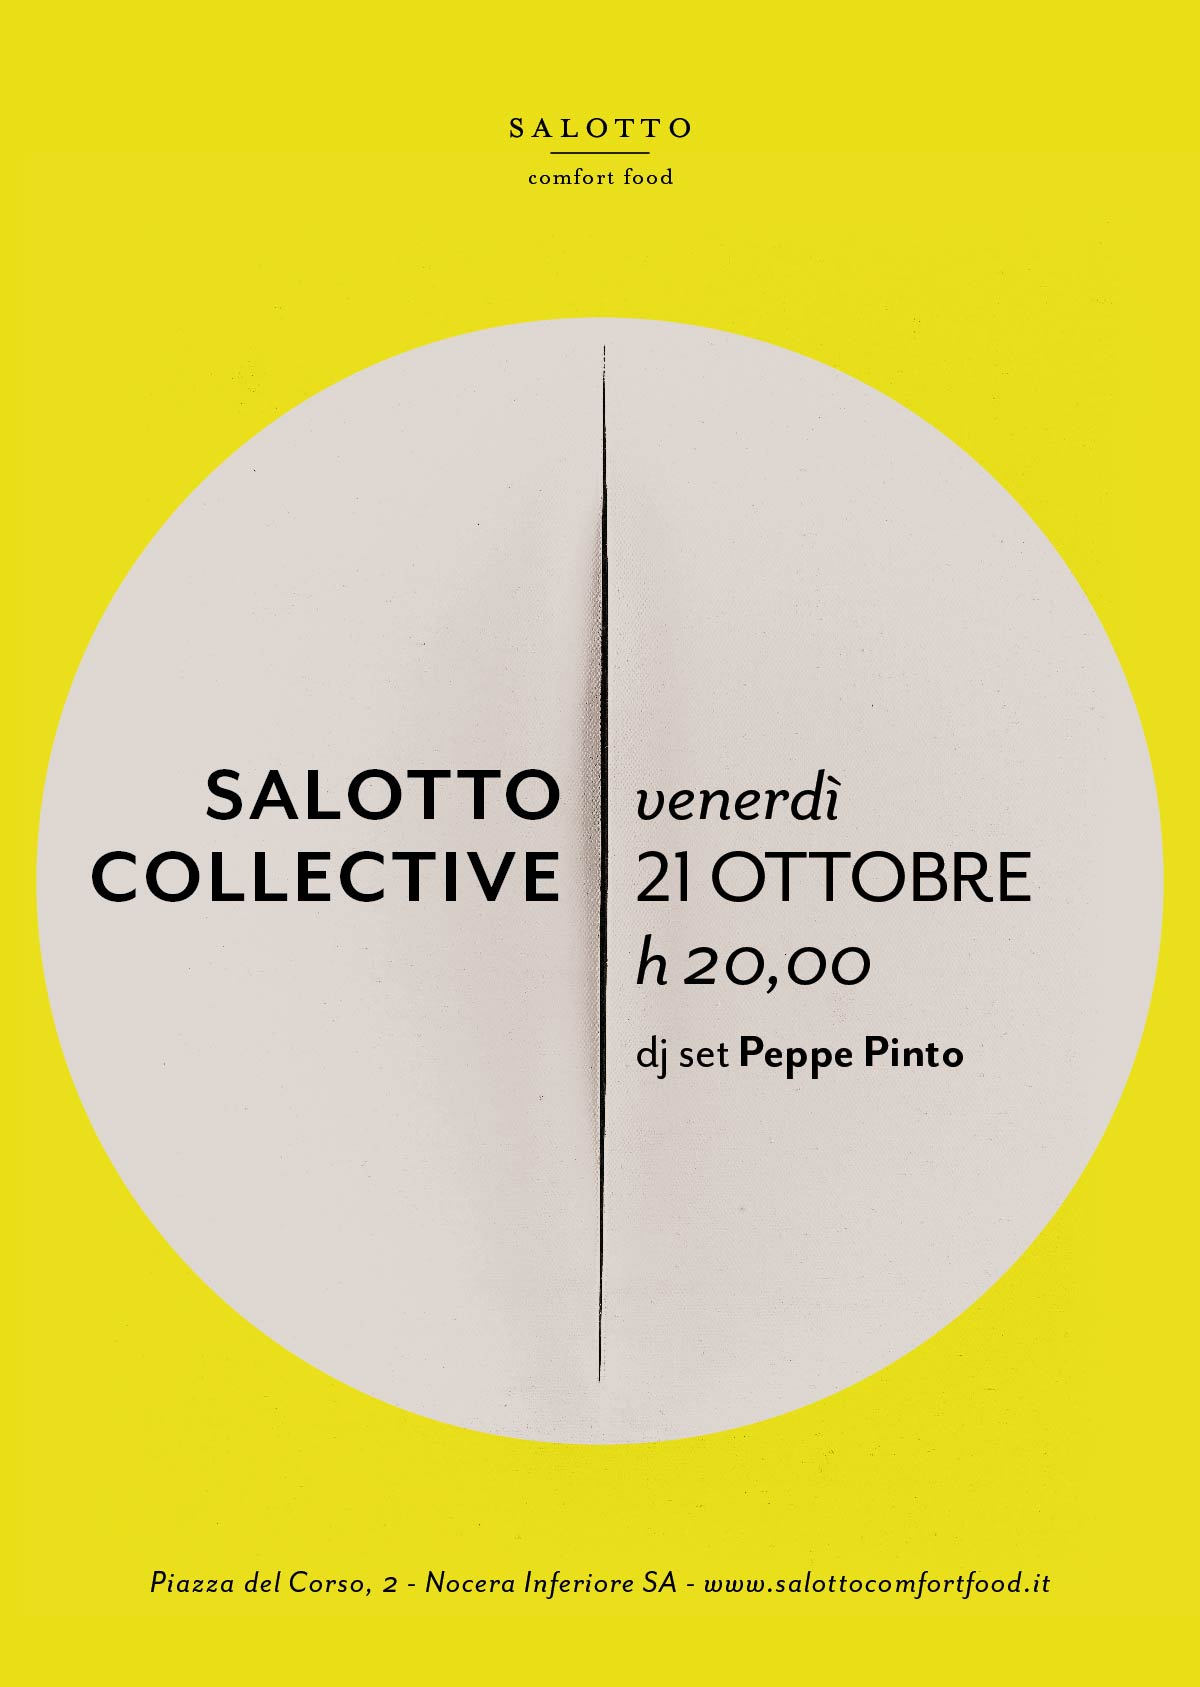 forzastudio_salotto_branding_salotto_collective_04